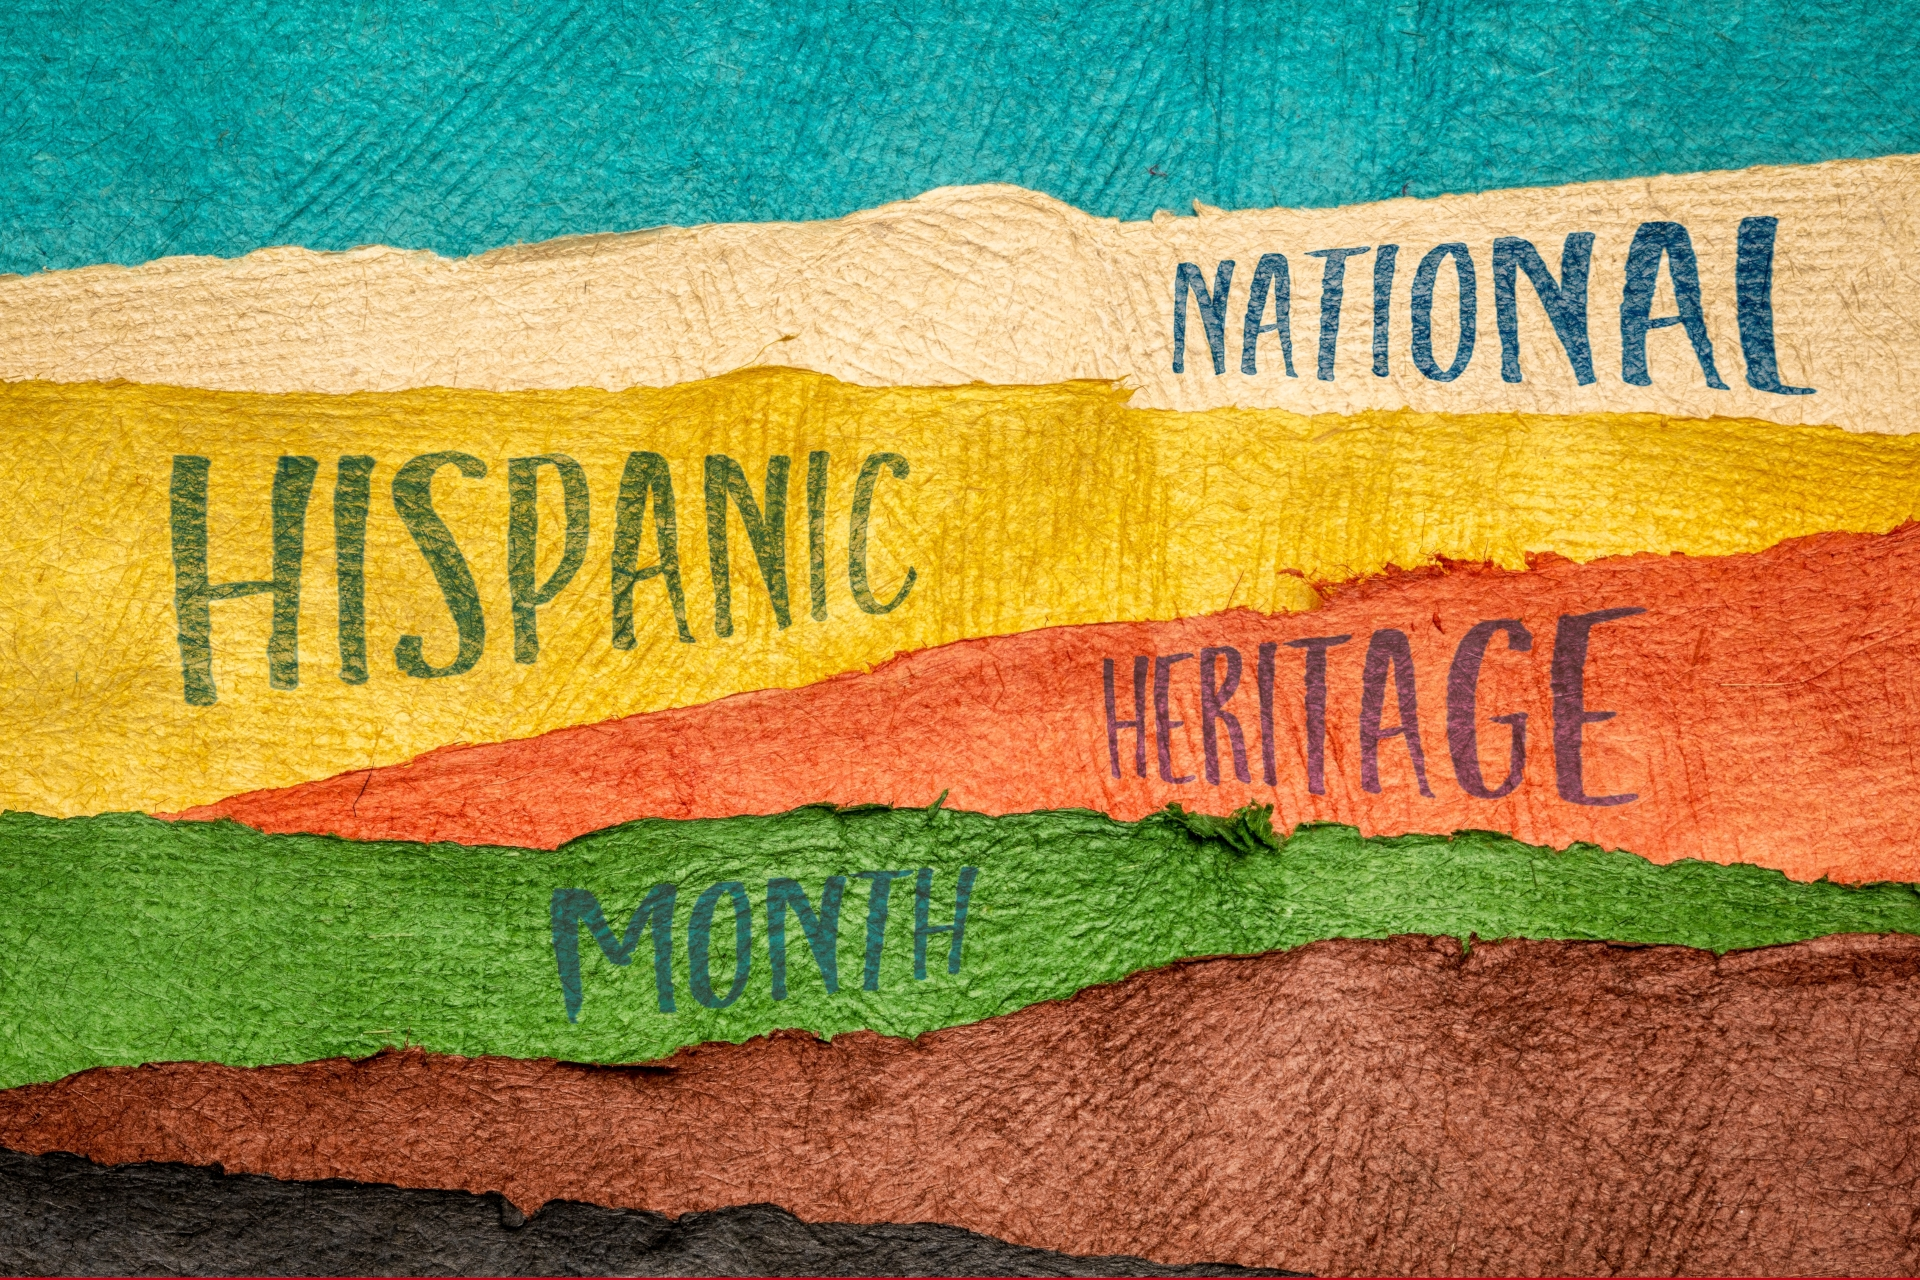 20+ Terrific Novels by Hispanic Writers - Brilliant Books That'll Move, Stir, Thrill and Dazzle You During Hispanic Heritage Month.